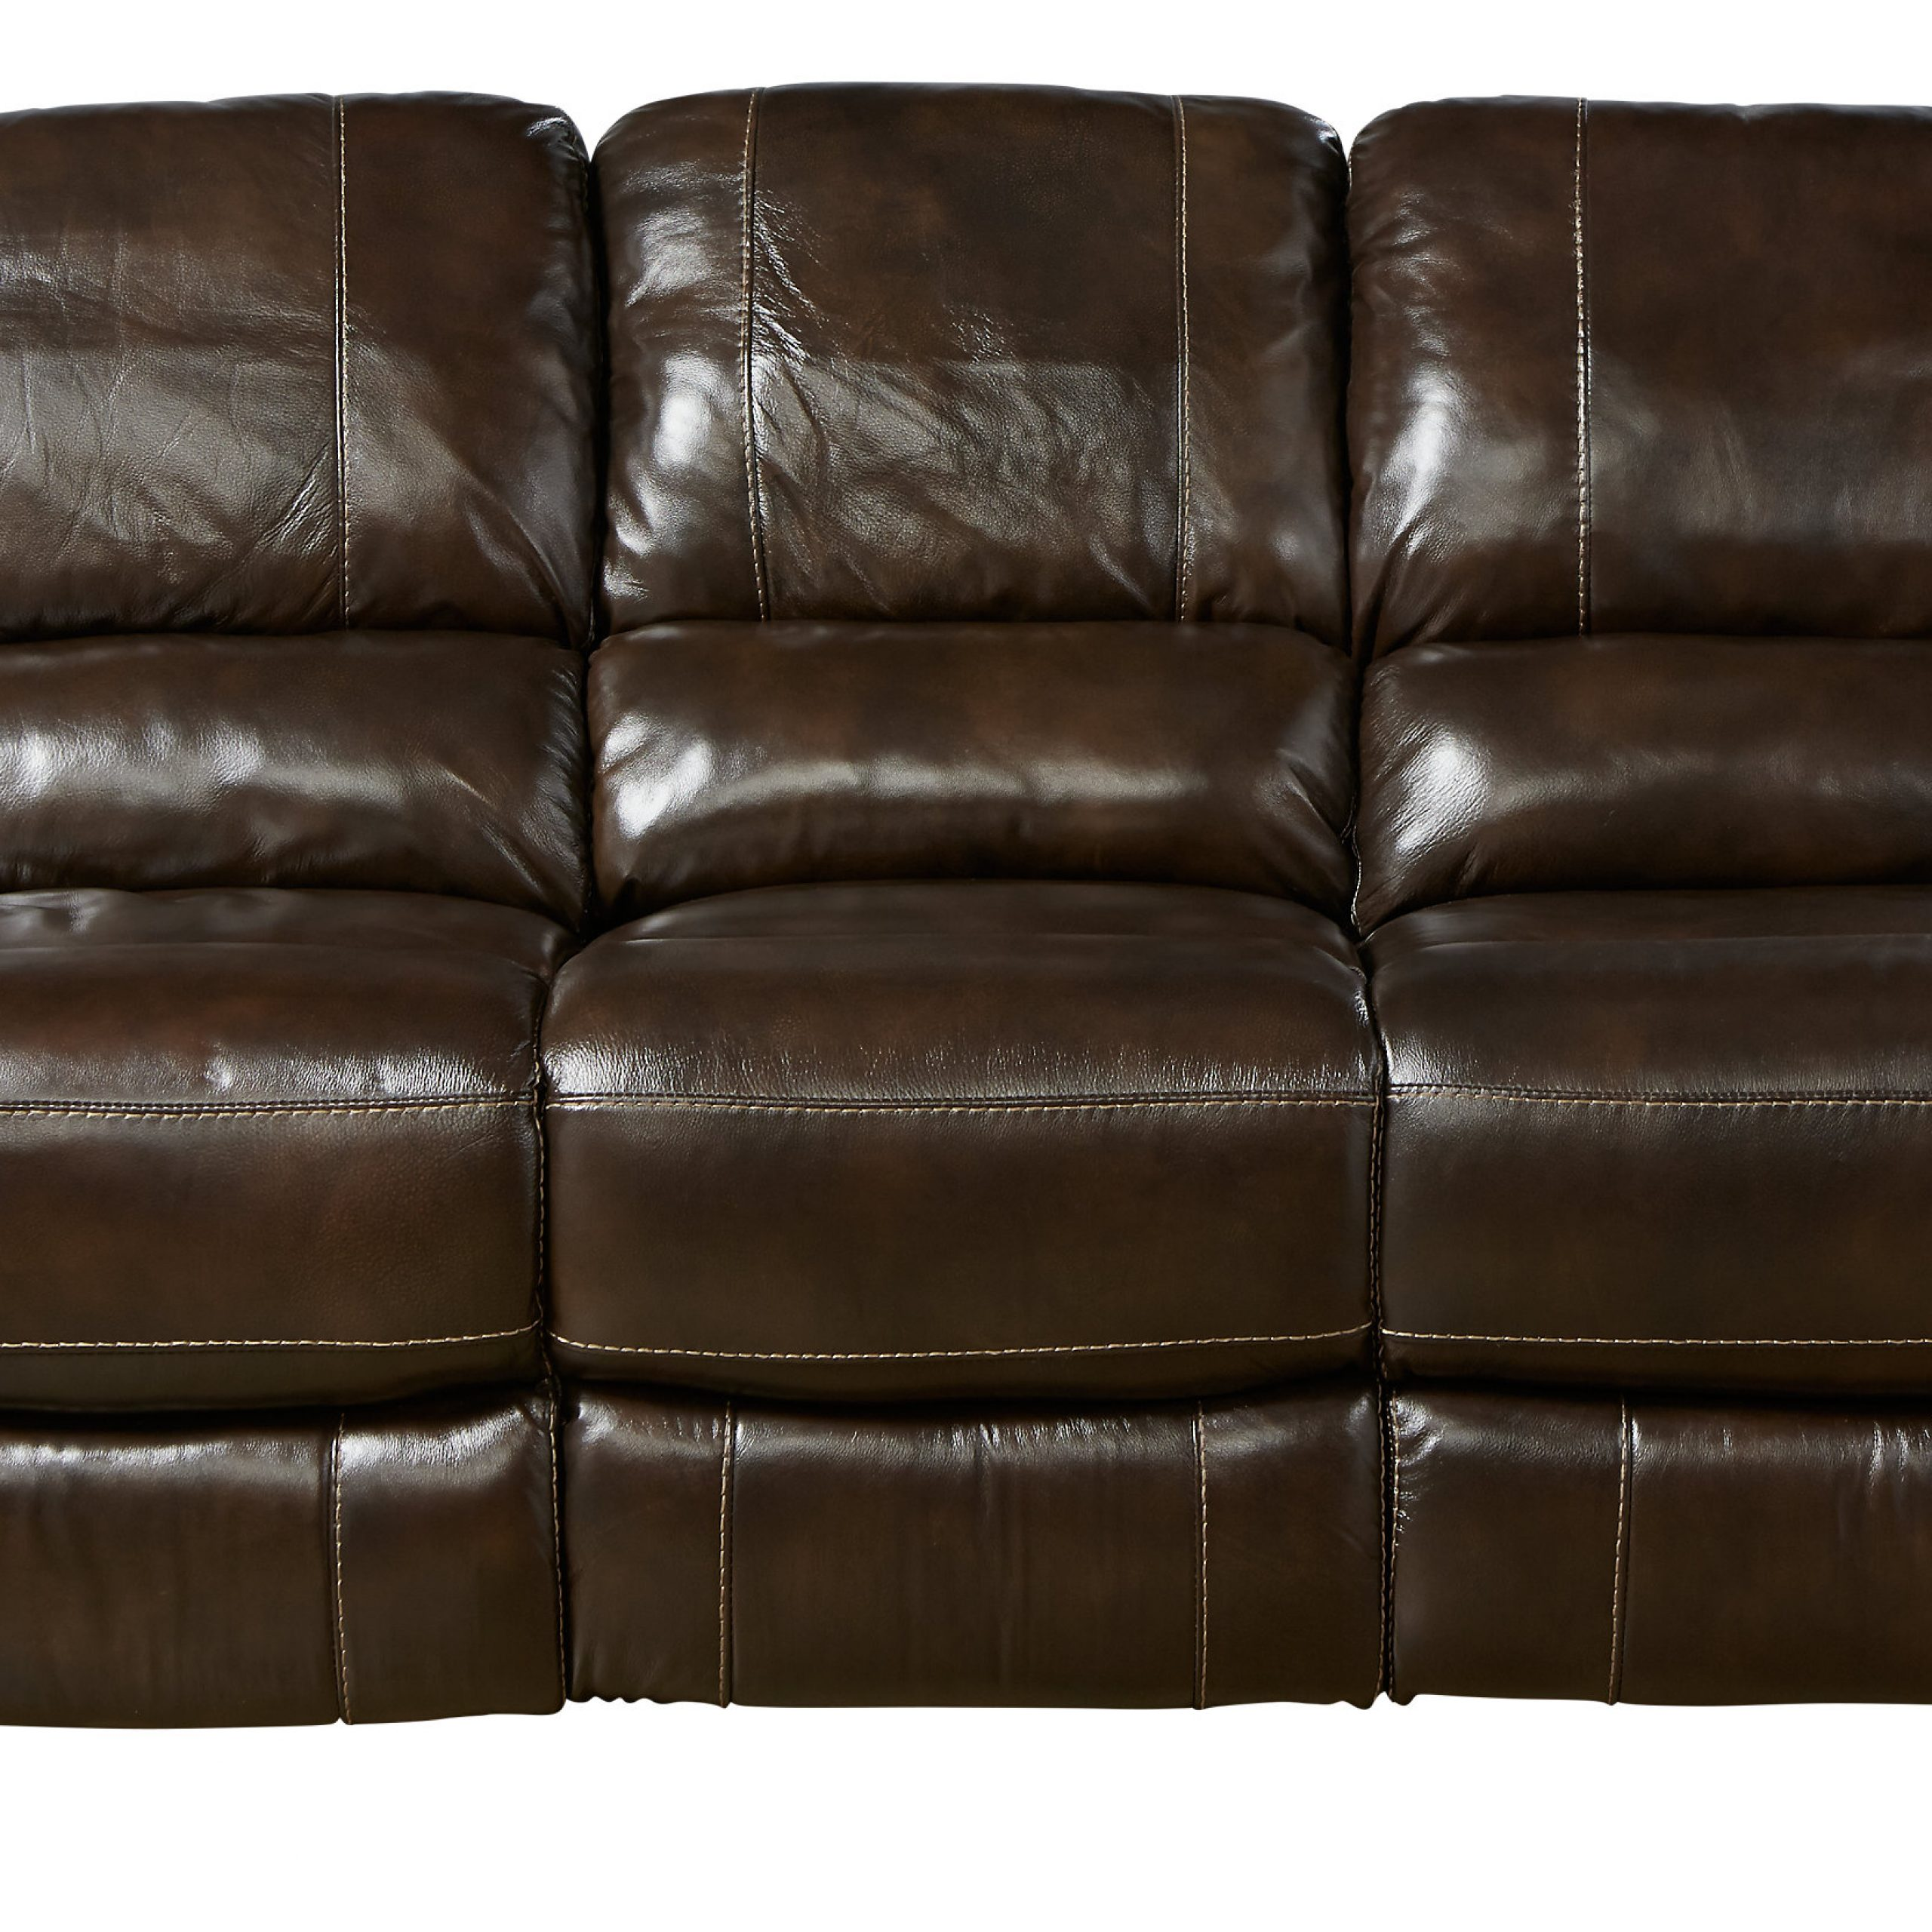 Expedition Brown Power Reclining Sofas Pertaining To Well Known $1, (View 7 of 15)